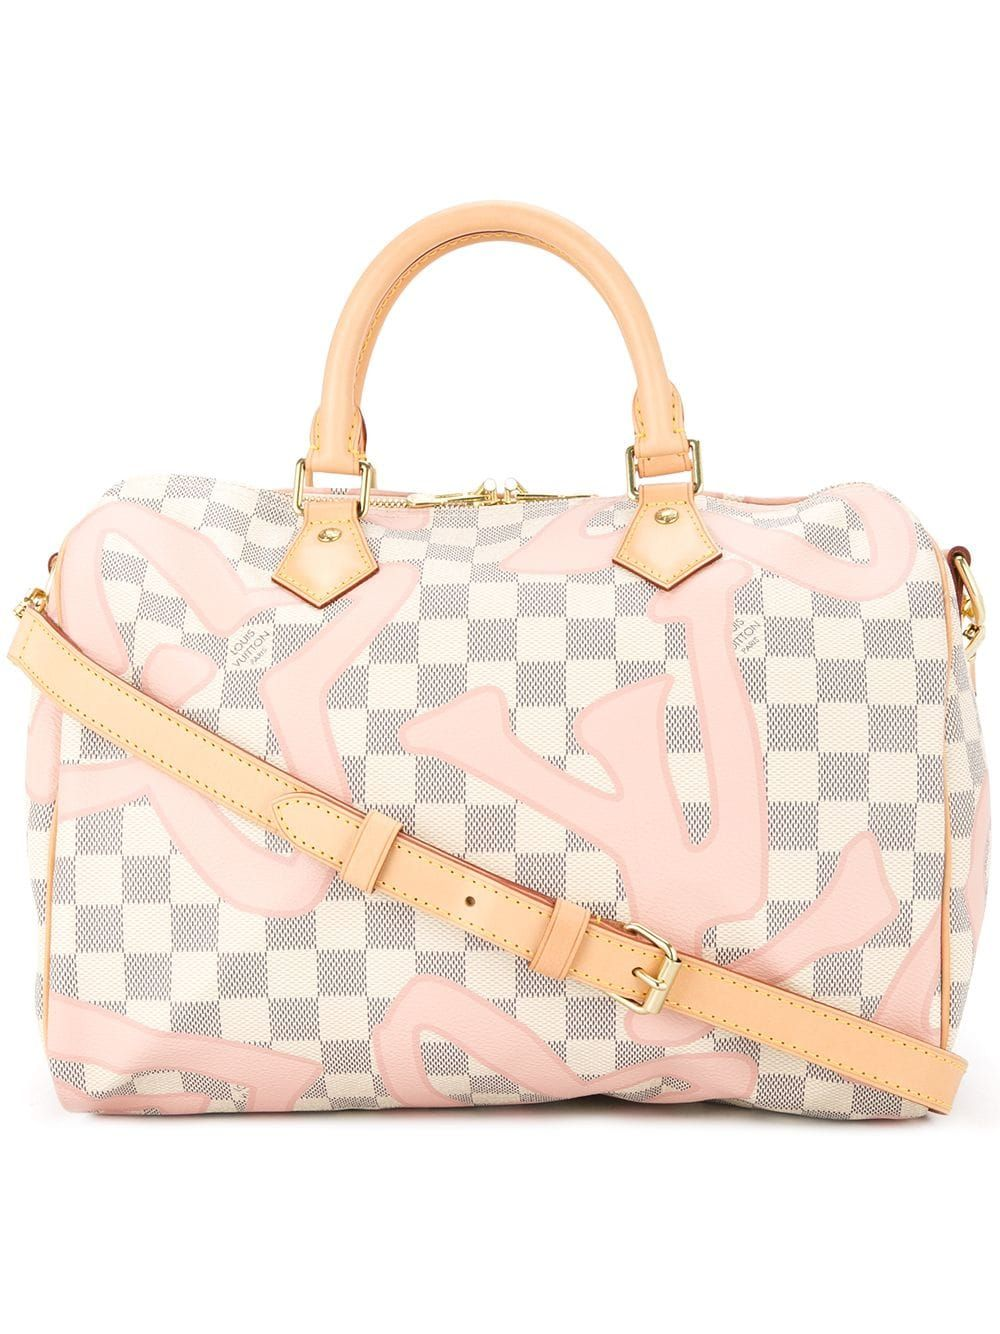 cf61fed2a6f21 Louis Vuitton Pre-Owned Speedy Bandouliere 30 2-way Tote in 2019 ...